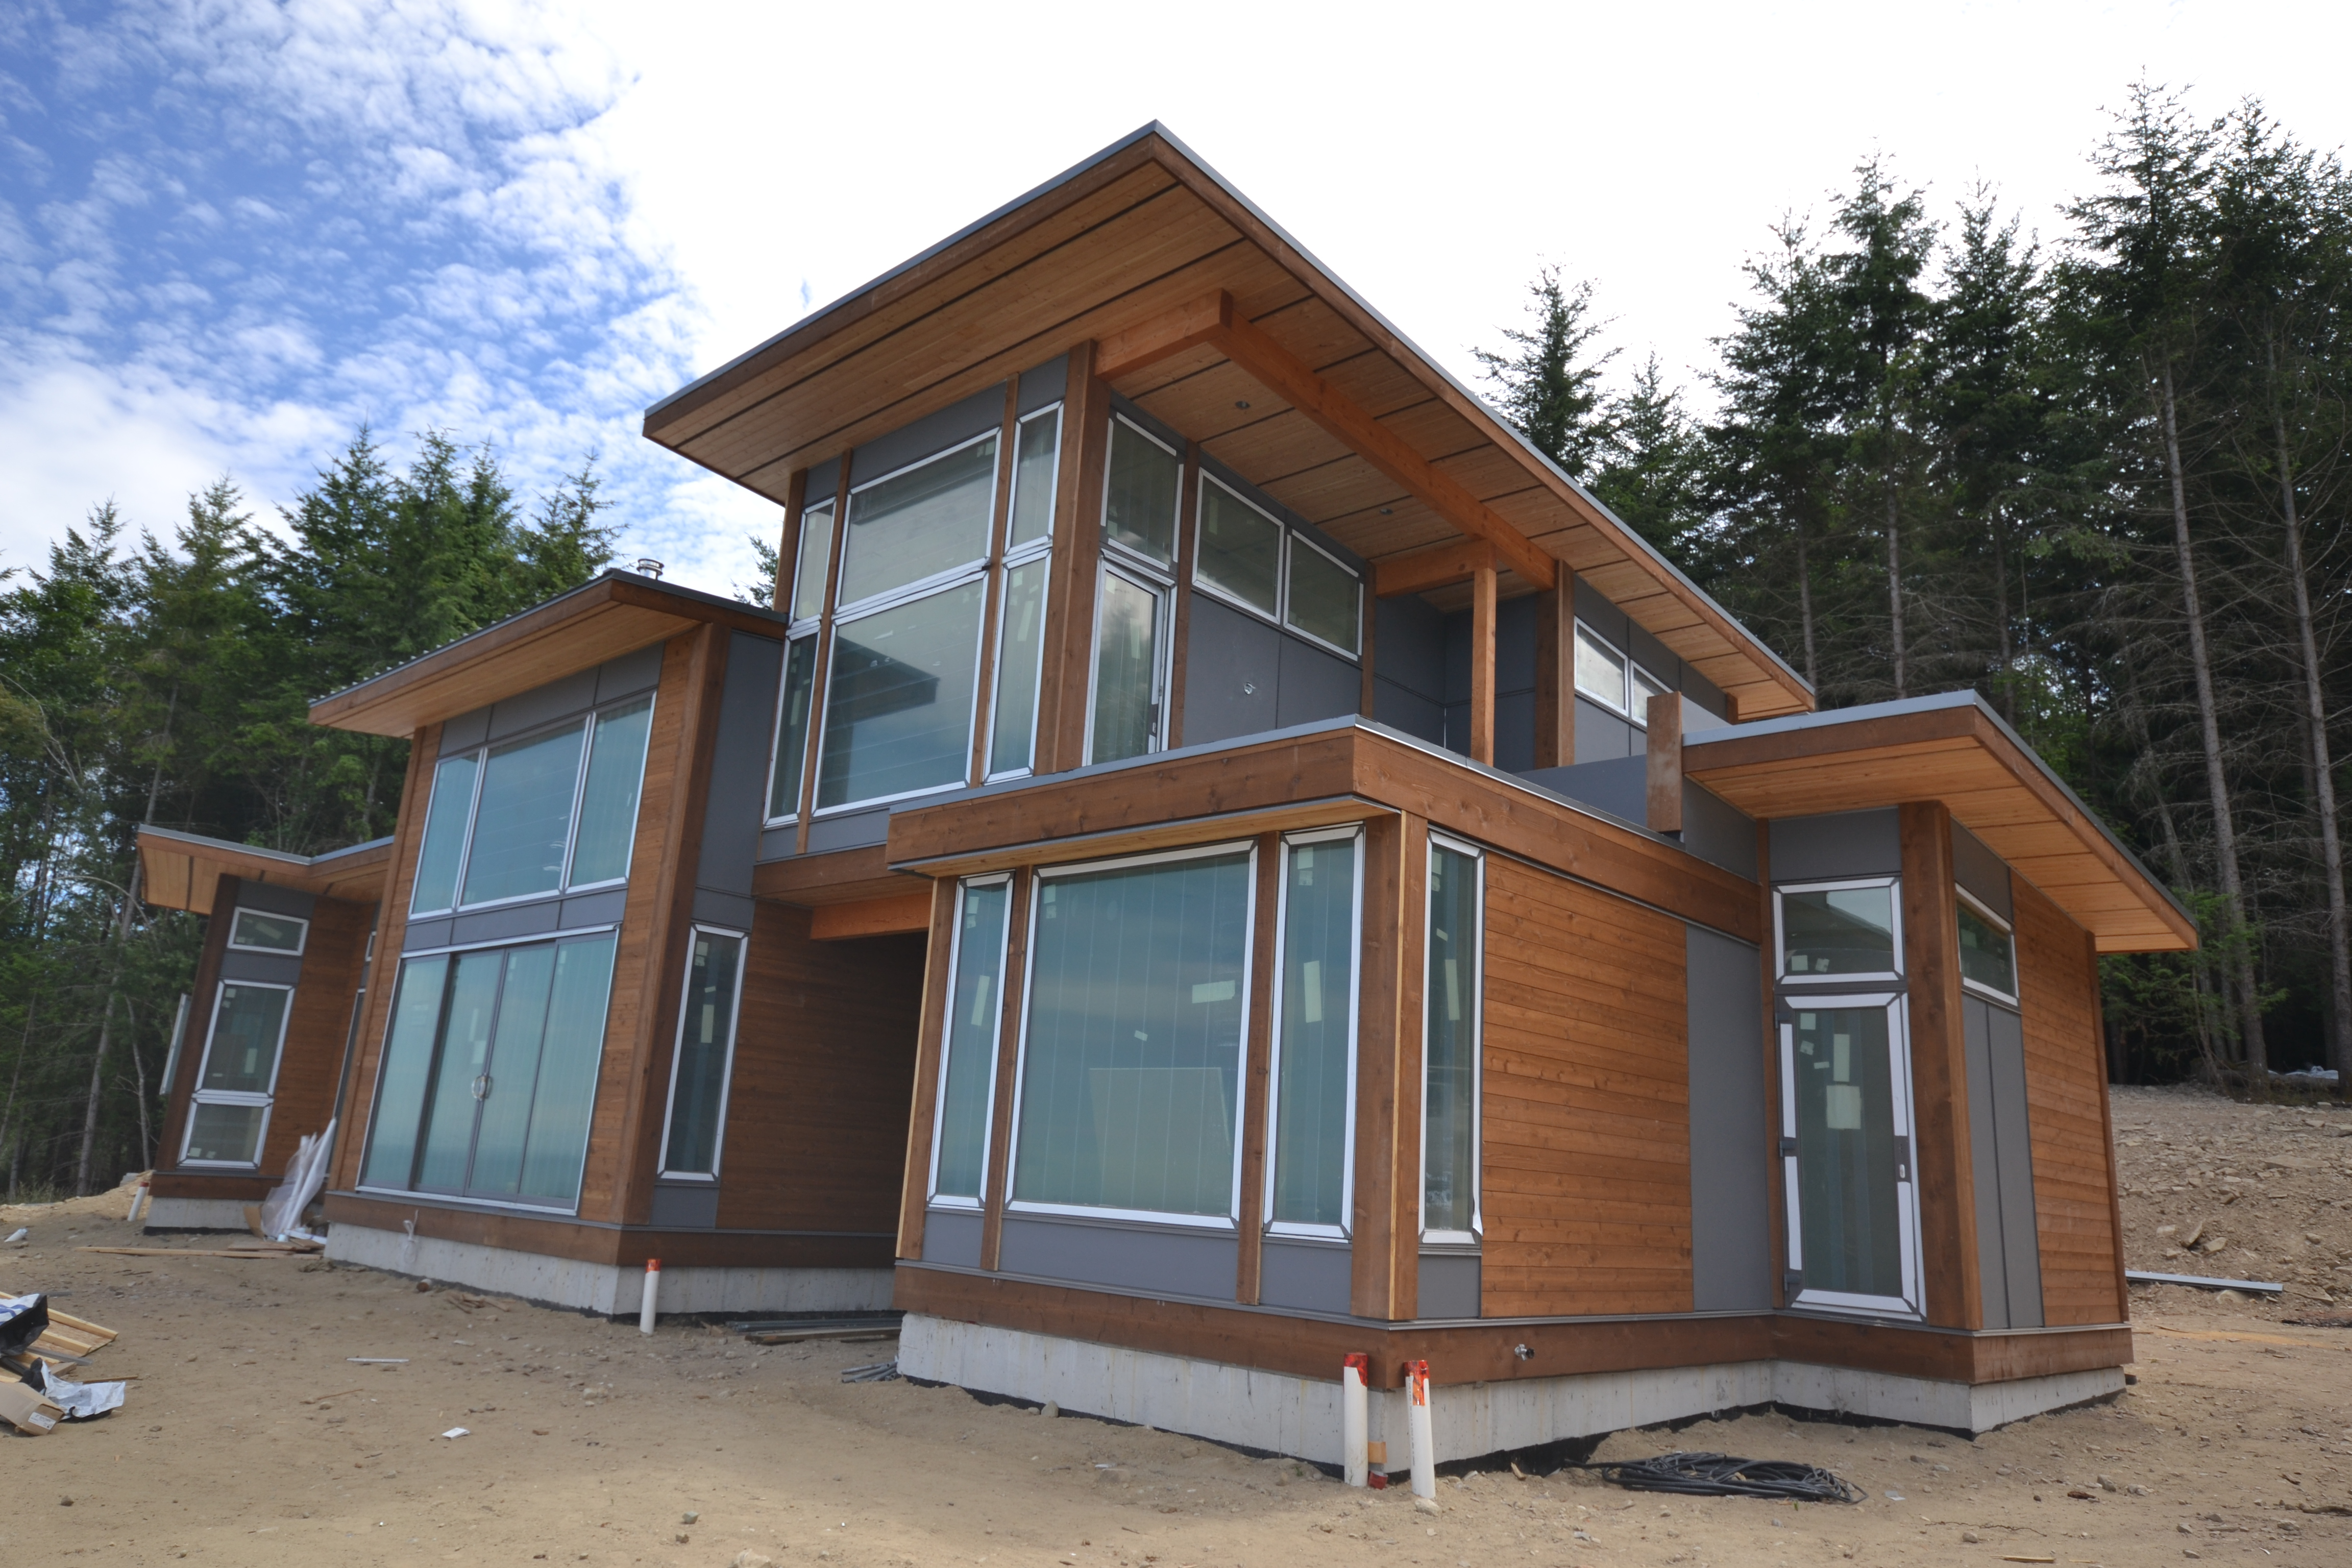 Galiano Island Beach Houses Are Well Underway